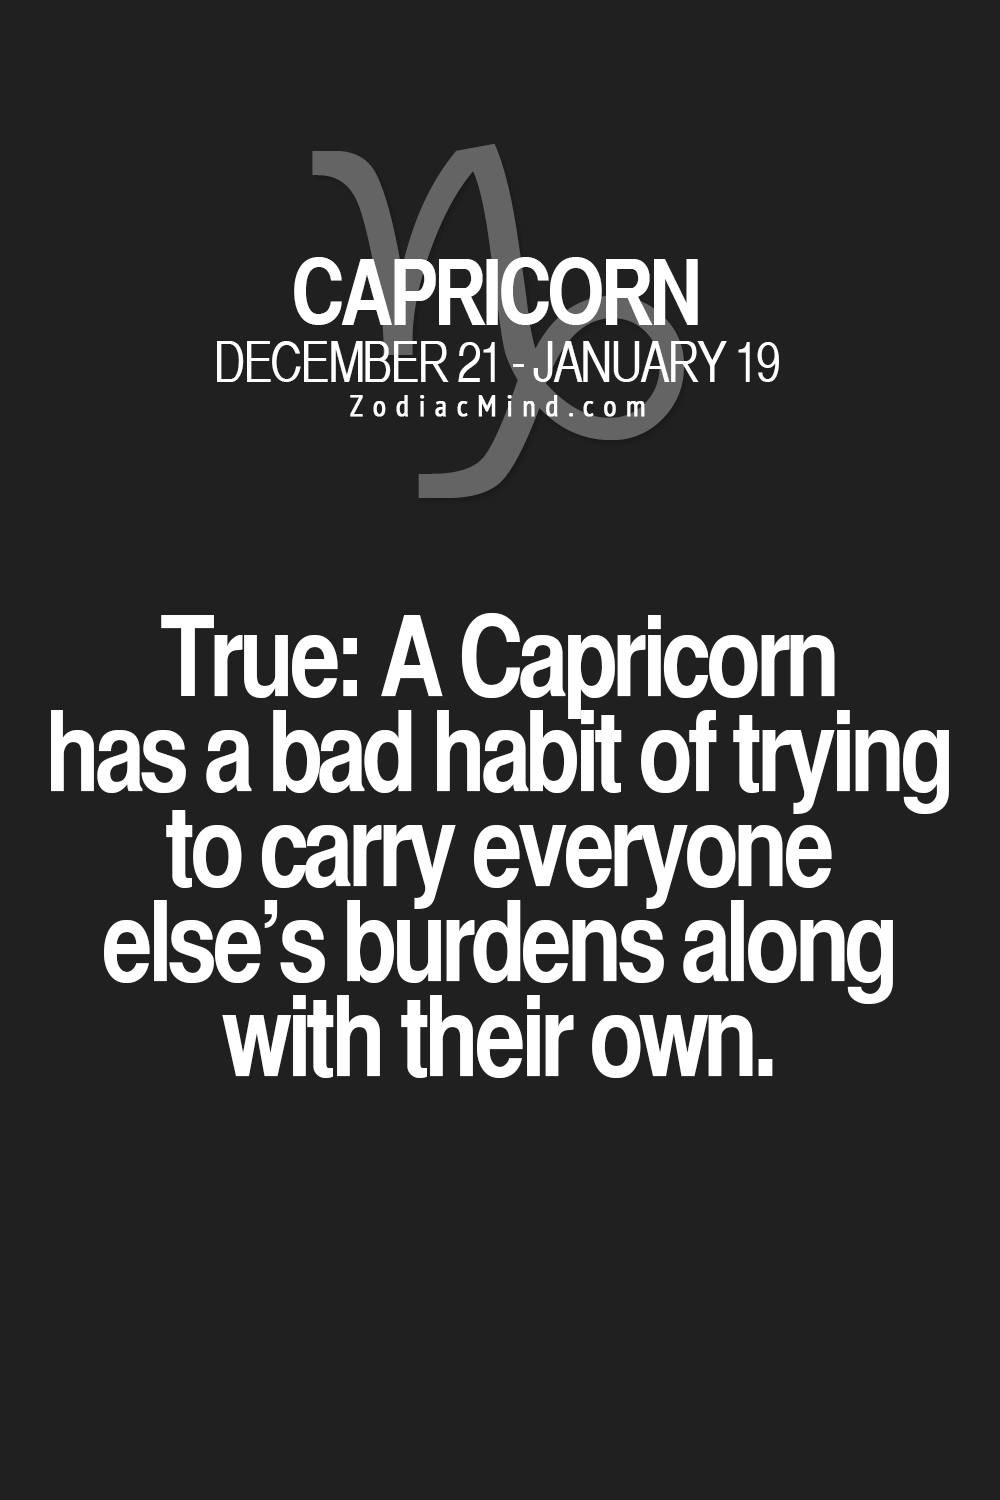 True: A Capricorn has a bad habit of trying to carry